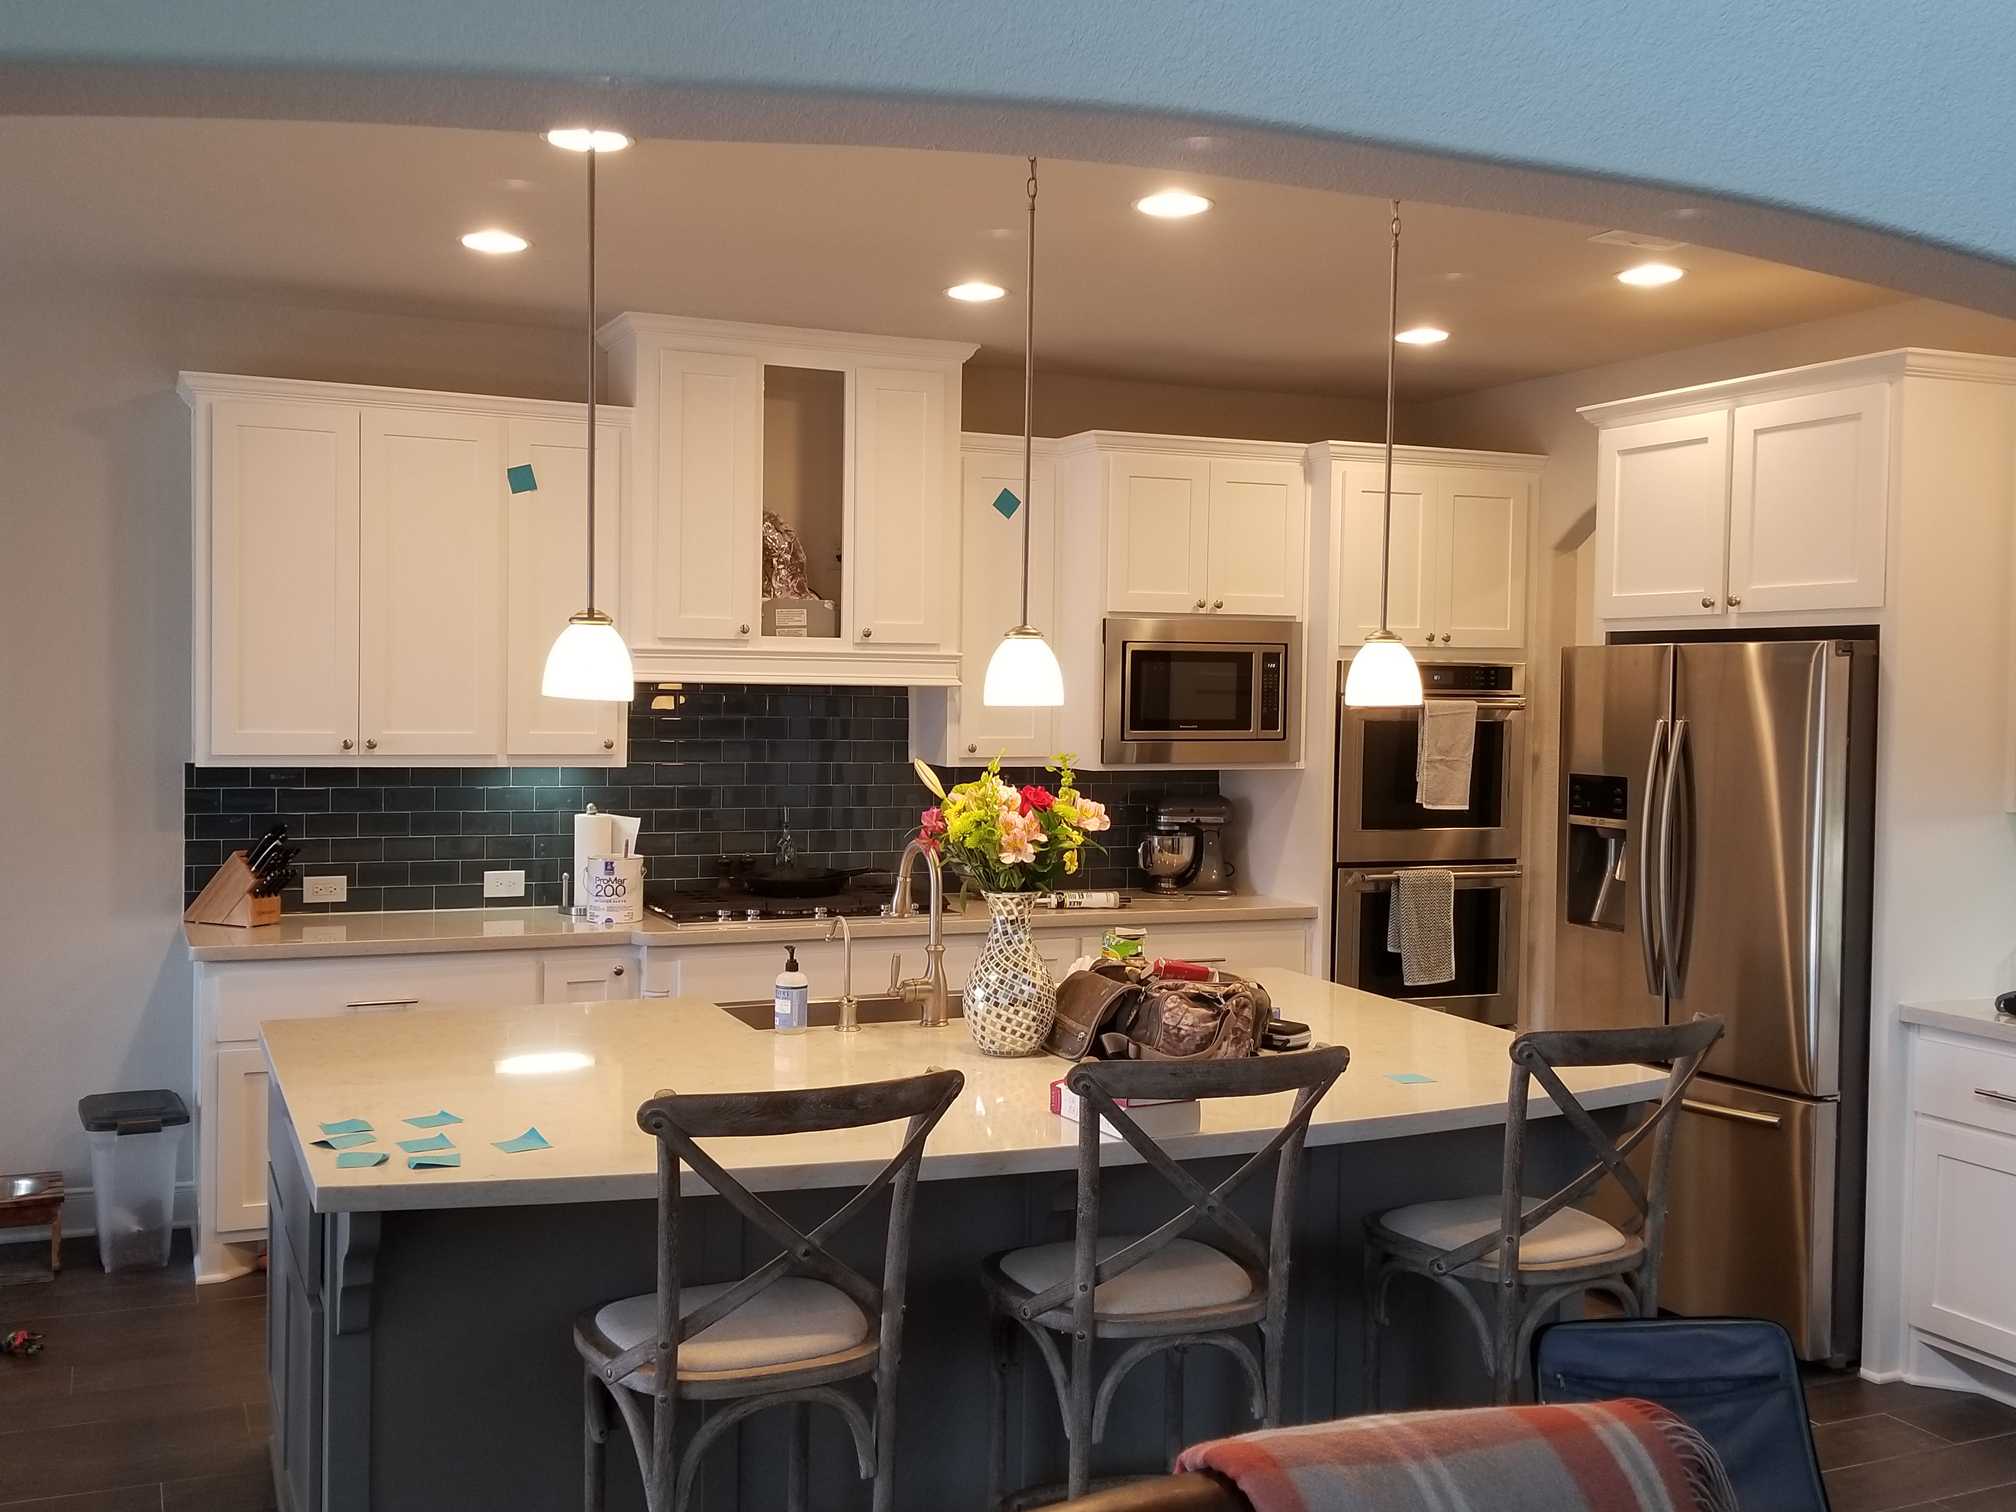 Buy custom kitchen cabinets factory direct in Millstone Township NJ, Buy custom bathroom cabinets in Millstone Township NJ, Buy custom shaker cabinets in Millstone Township NJ, Buy custom craftsman cabinets in Millstone Township NJ